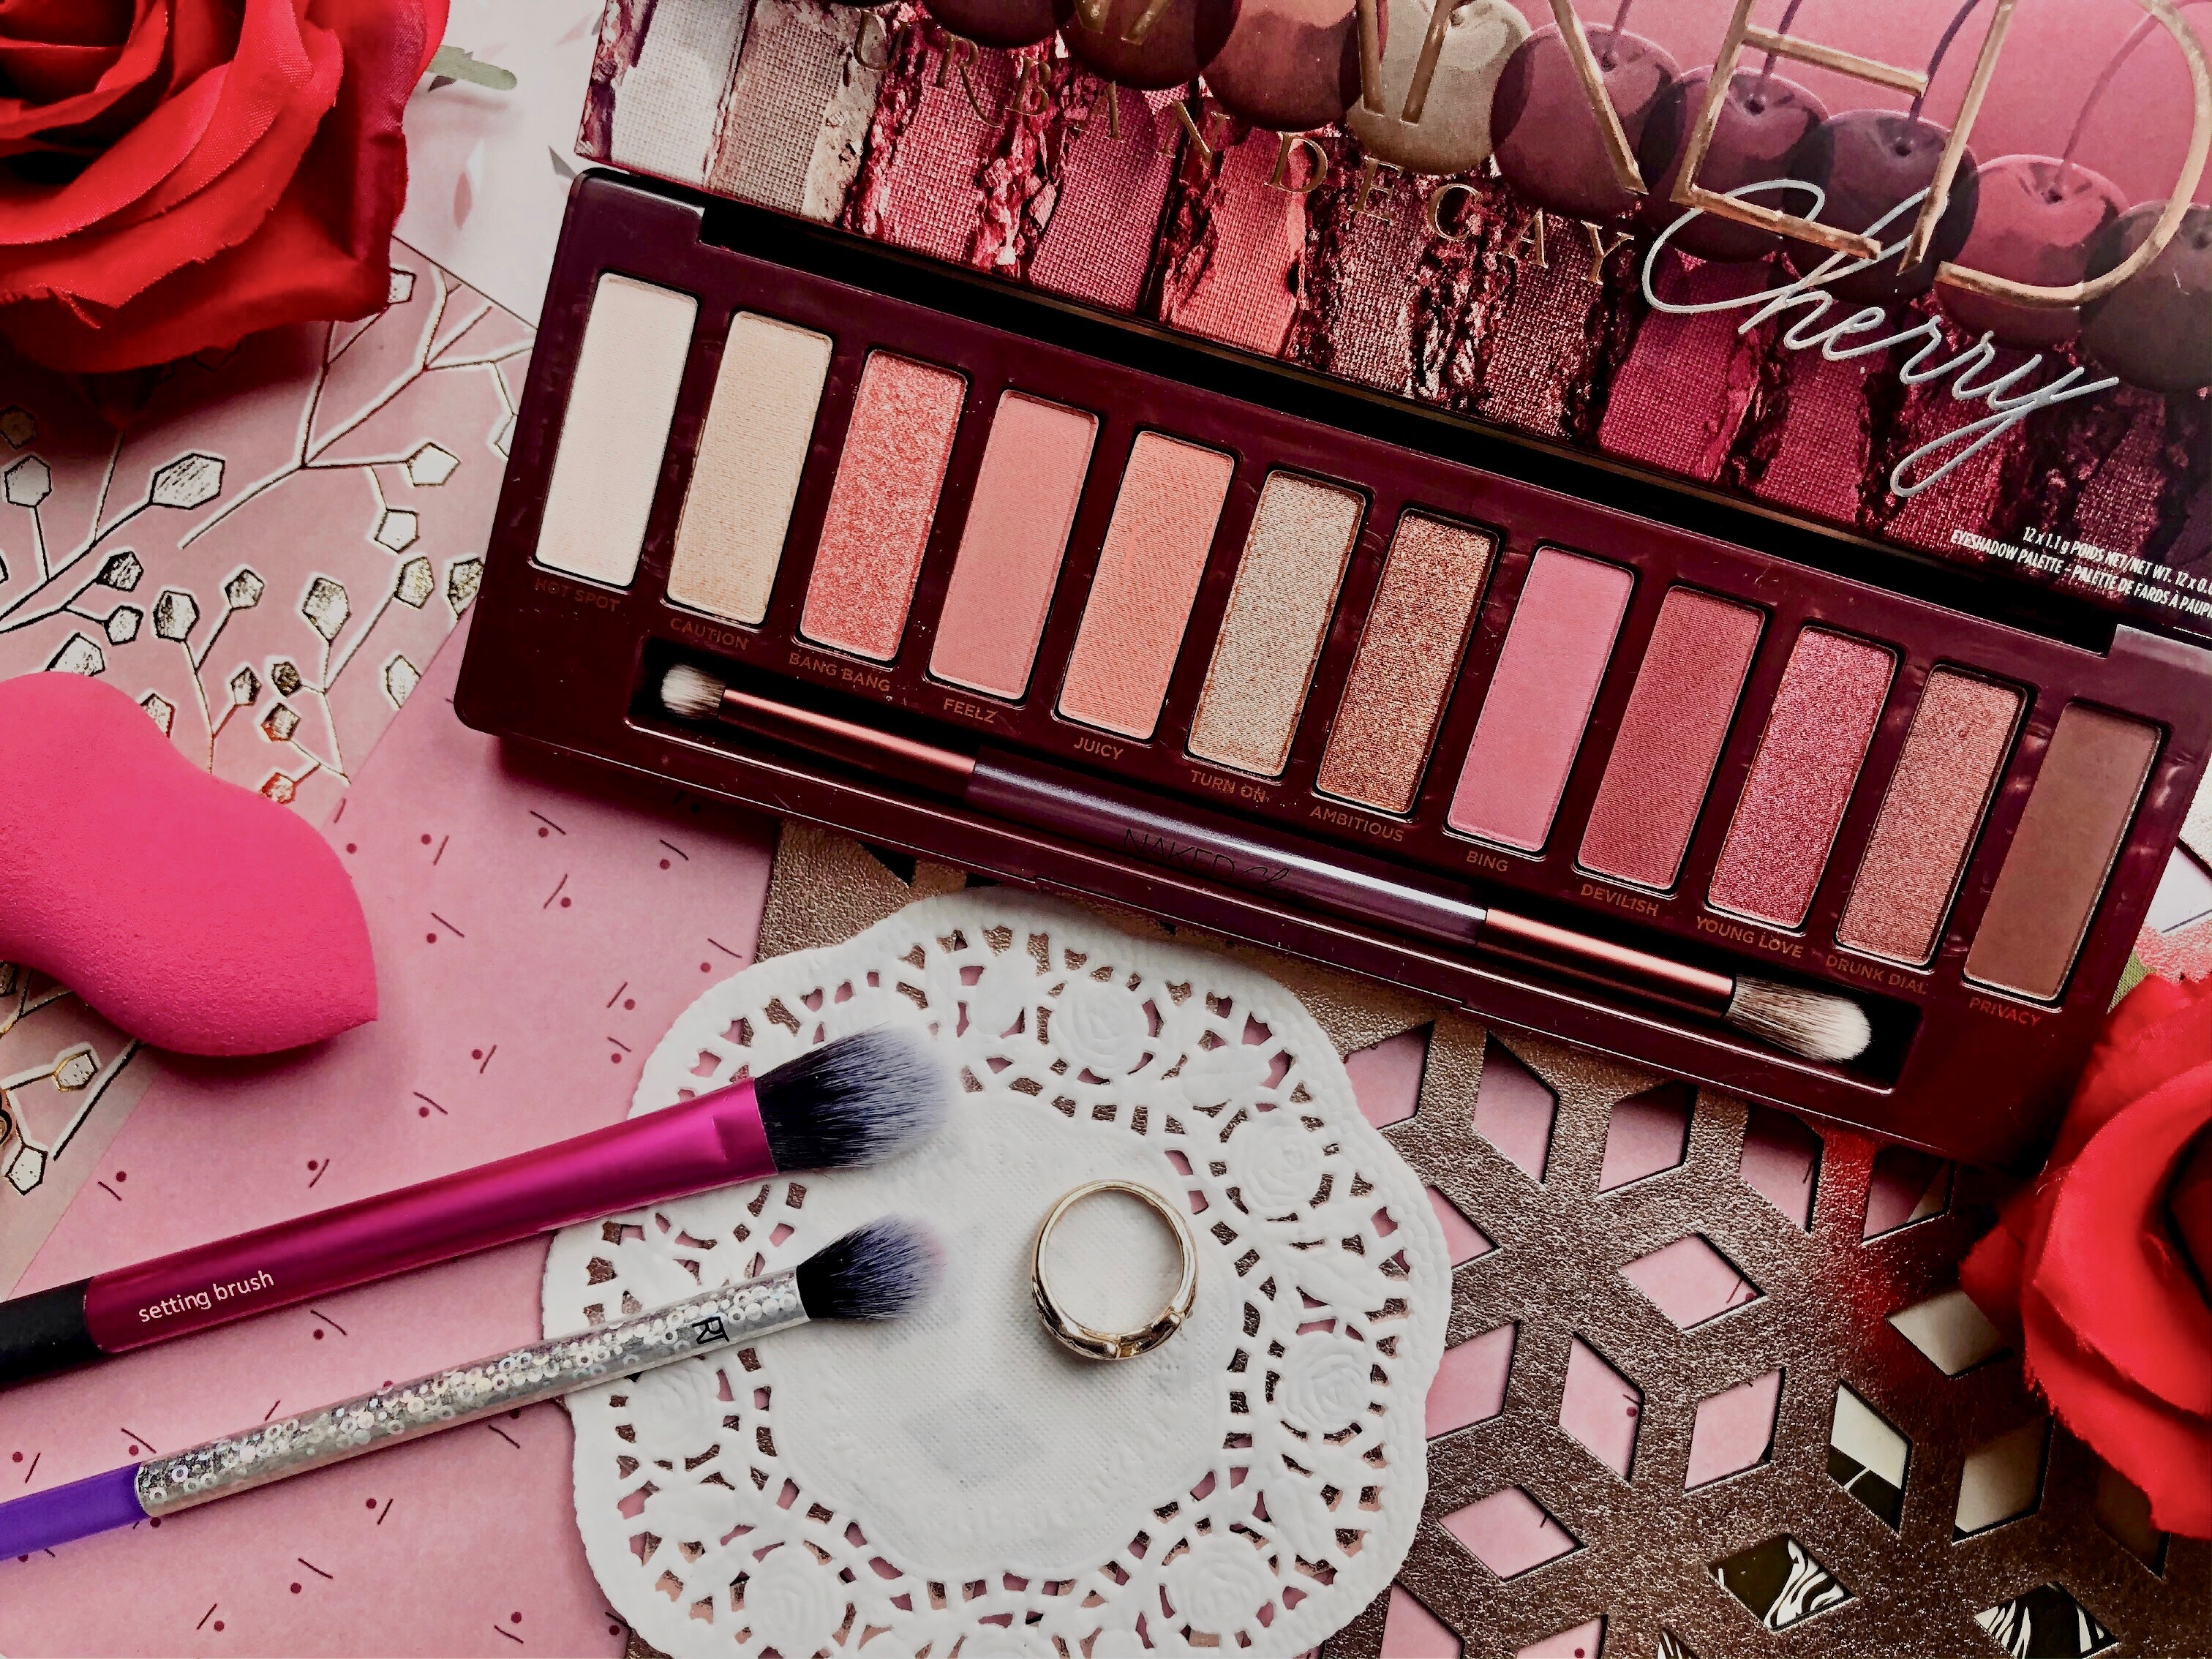 THE CHERRY ON TOP? URBAN DECAY'S NAKED CHERRY PALETTE